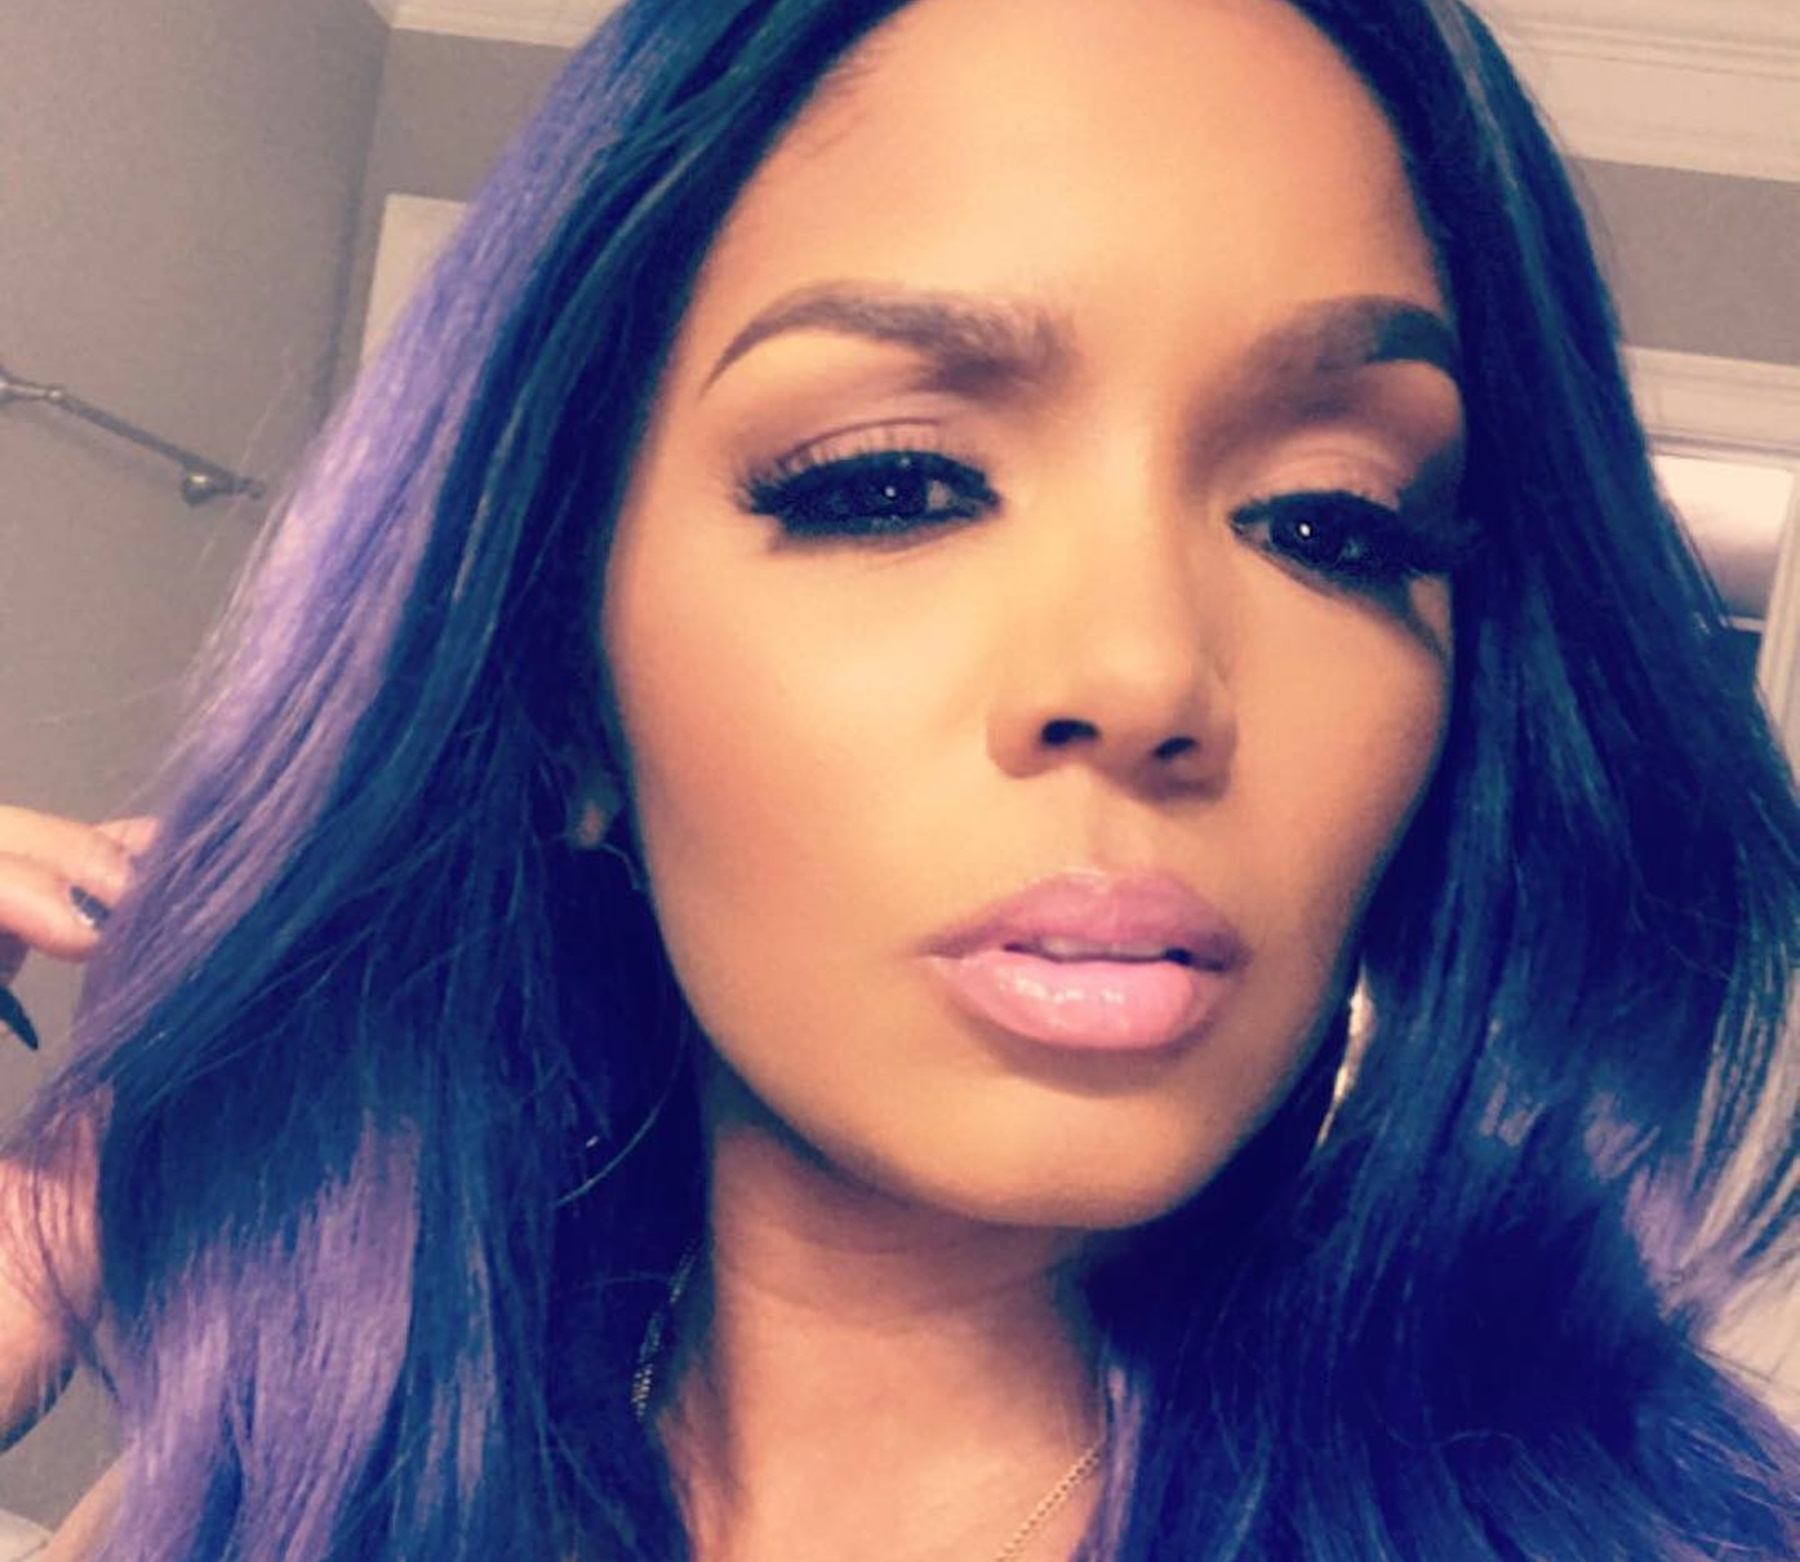 rasheeda-frosts-wig-game-is-the-best-check-out-the-latest-video-in-which-shes-showing-fans-how-her-wig-stays-on